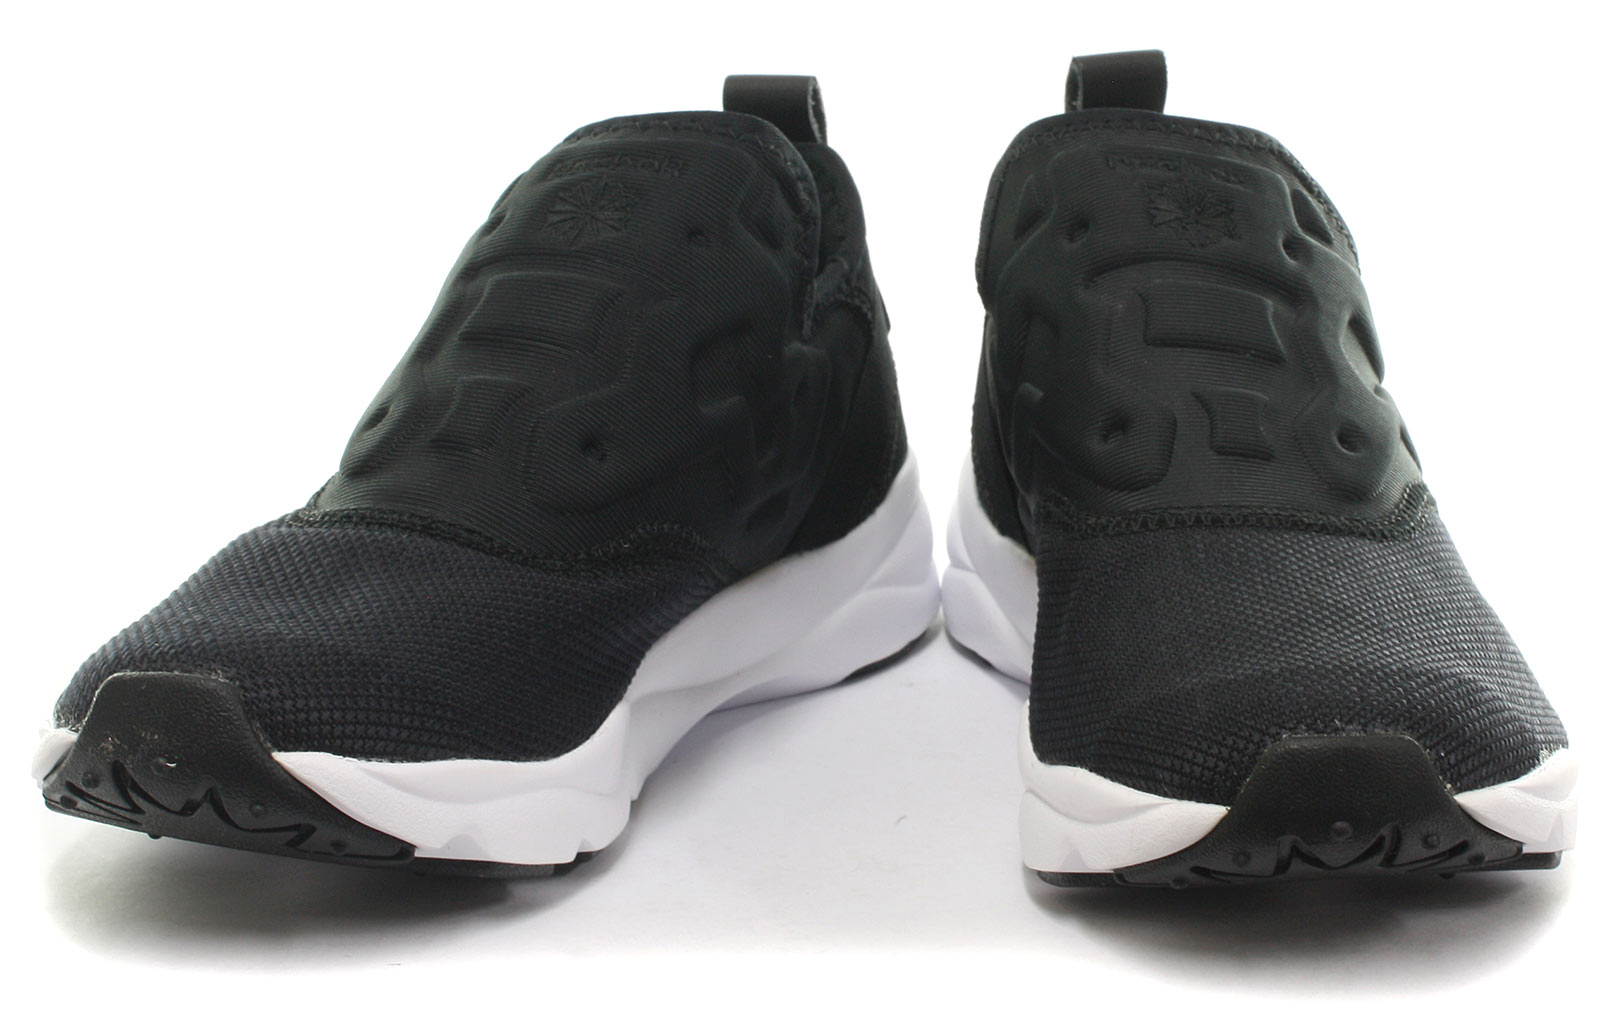 best service 1f0cc 0e645 ... NIKE Men s Men s Men s Zoom Spiridon Ultra Team men s size 10 with  Fast-Free Ship ...